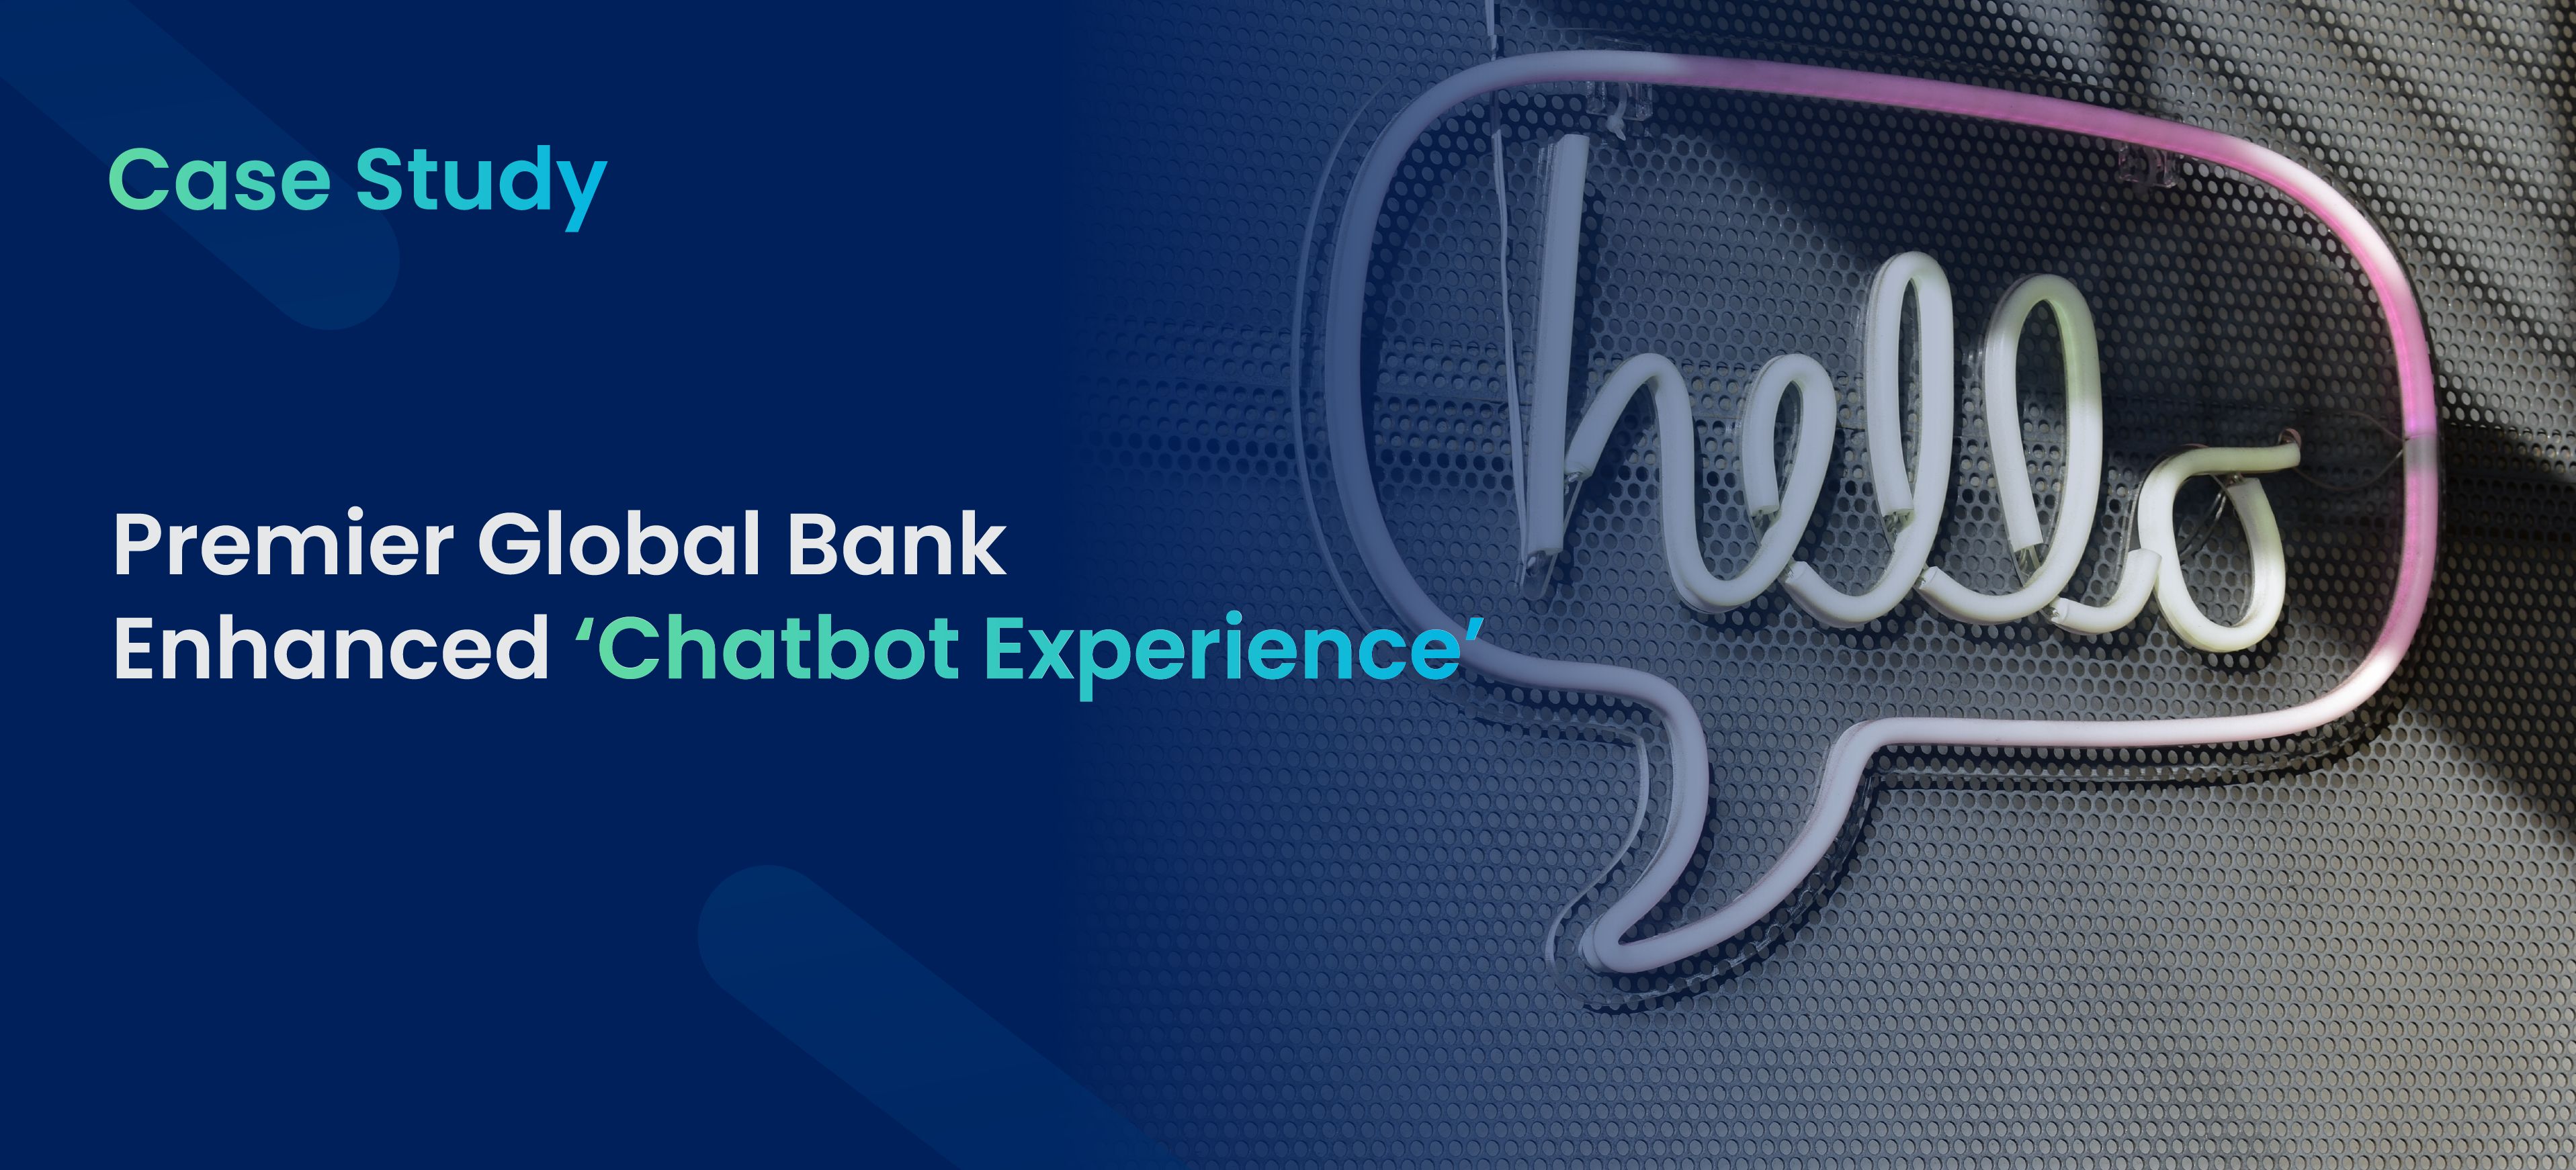 Global Bank uses Emotion AI on chatbot to nurture CX